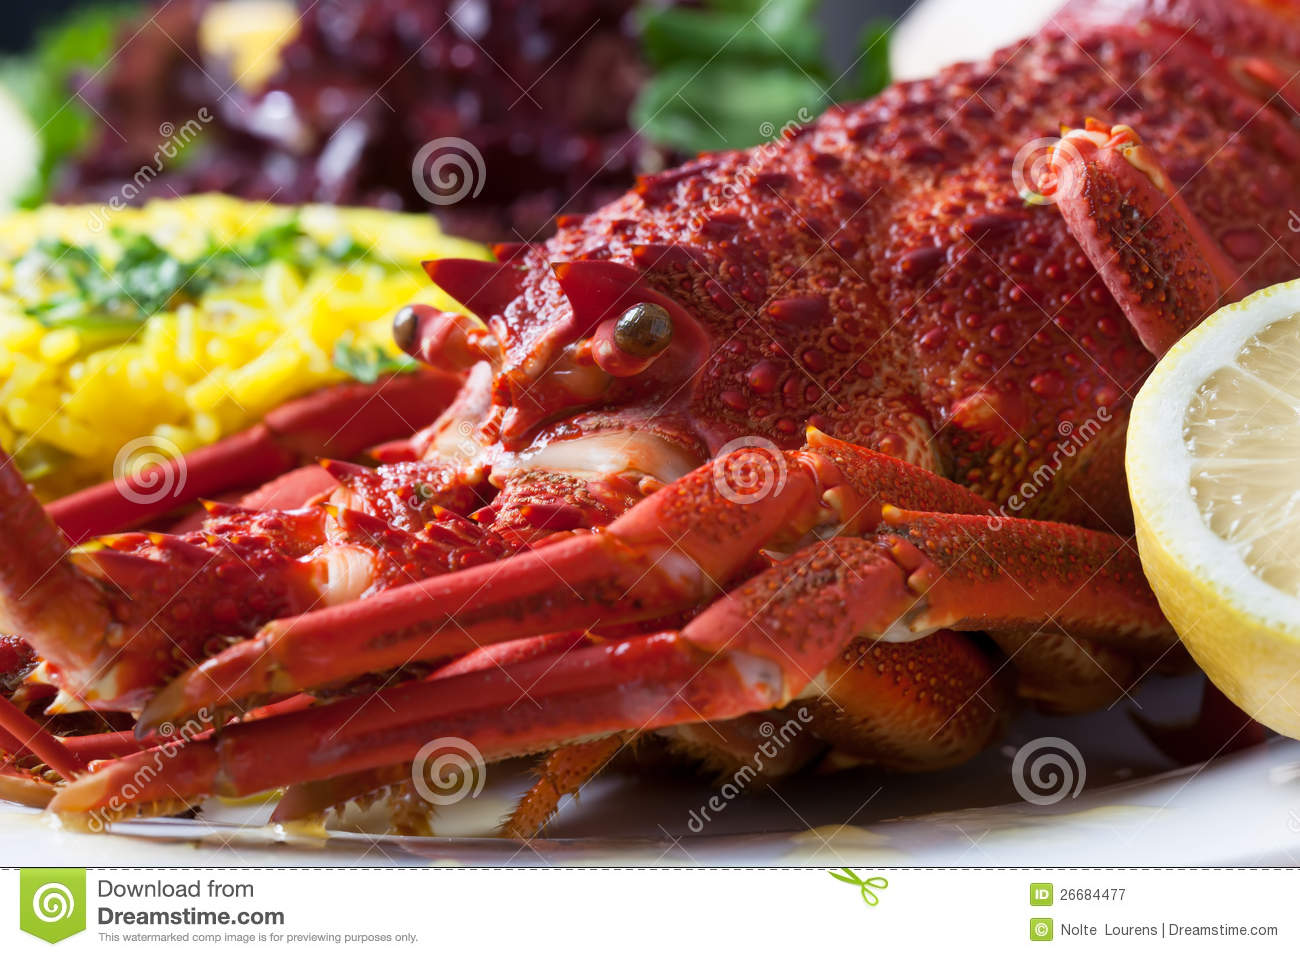 Crayfish served with rise and lettuce